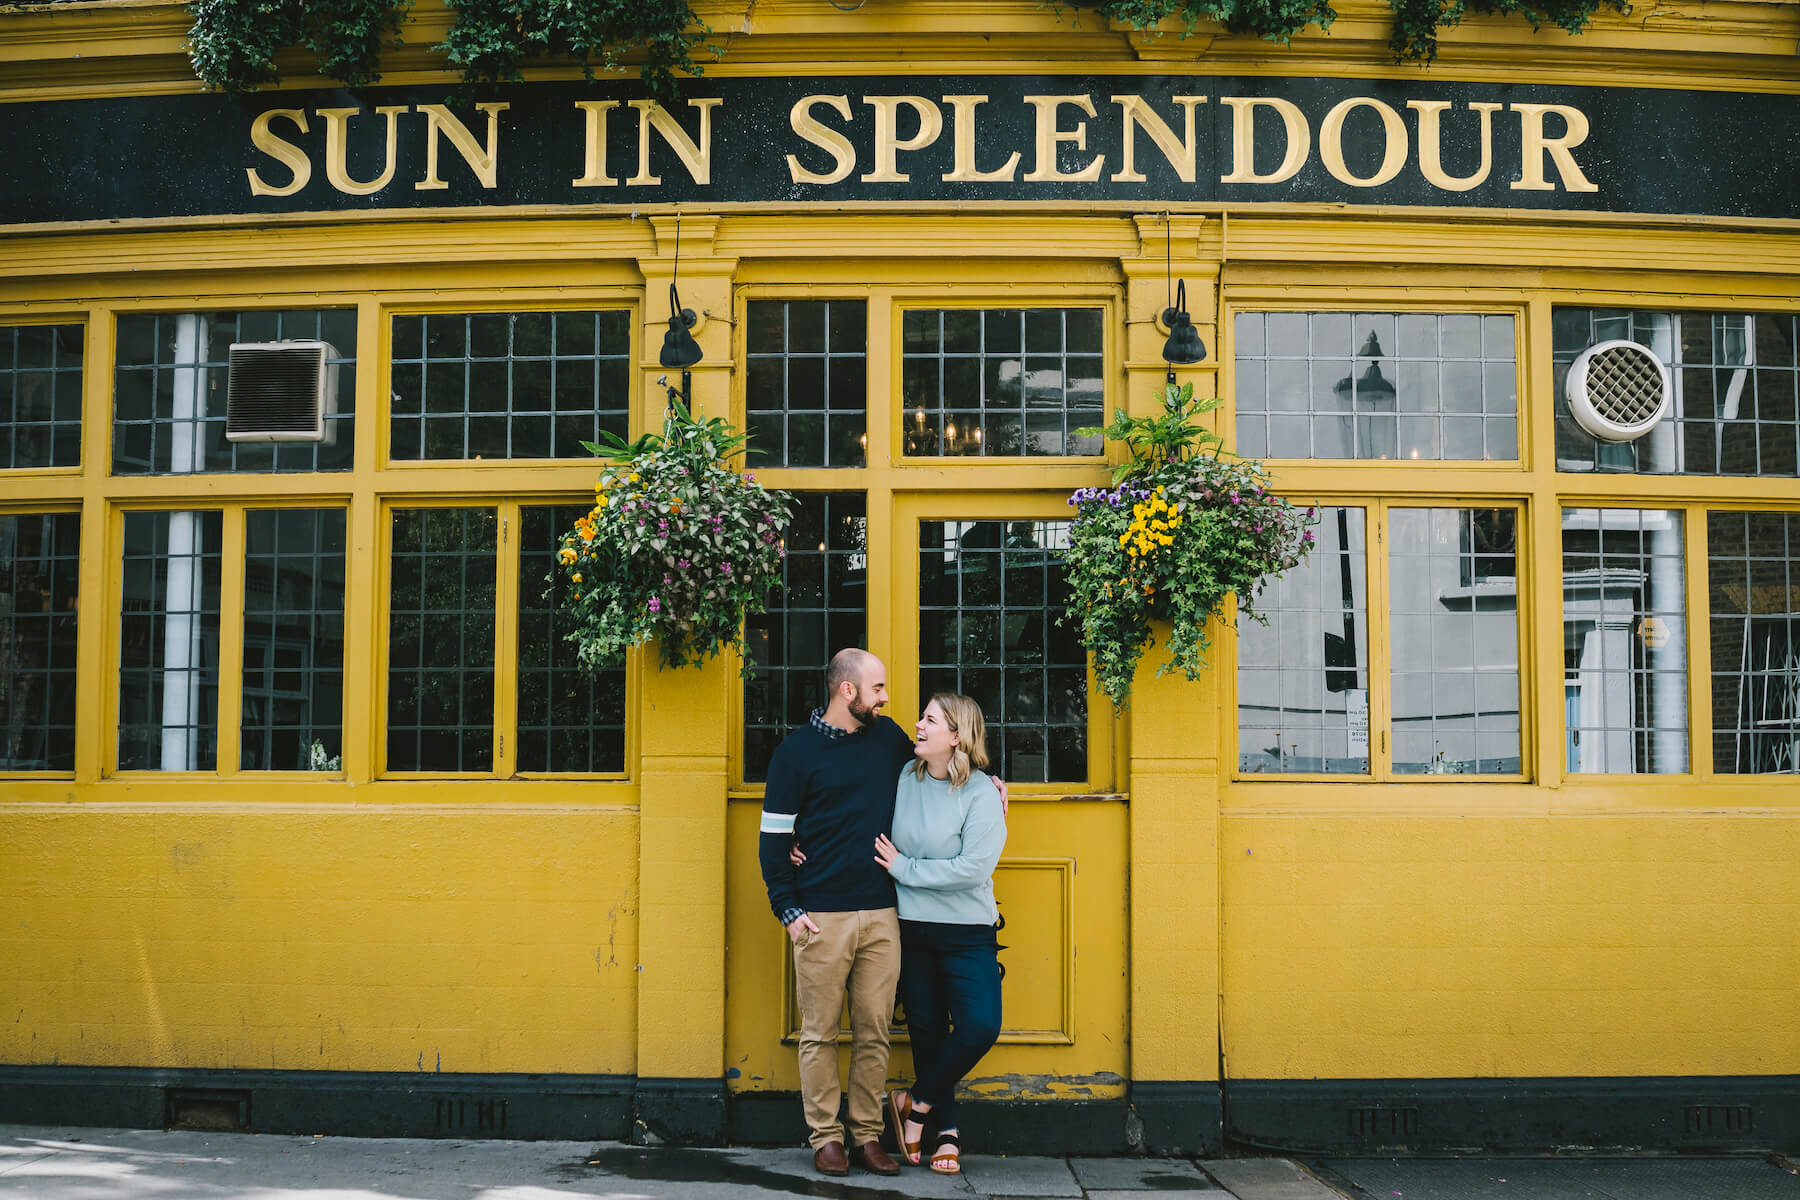 Couple standing in front of Sun in Splendour pub in London, England